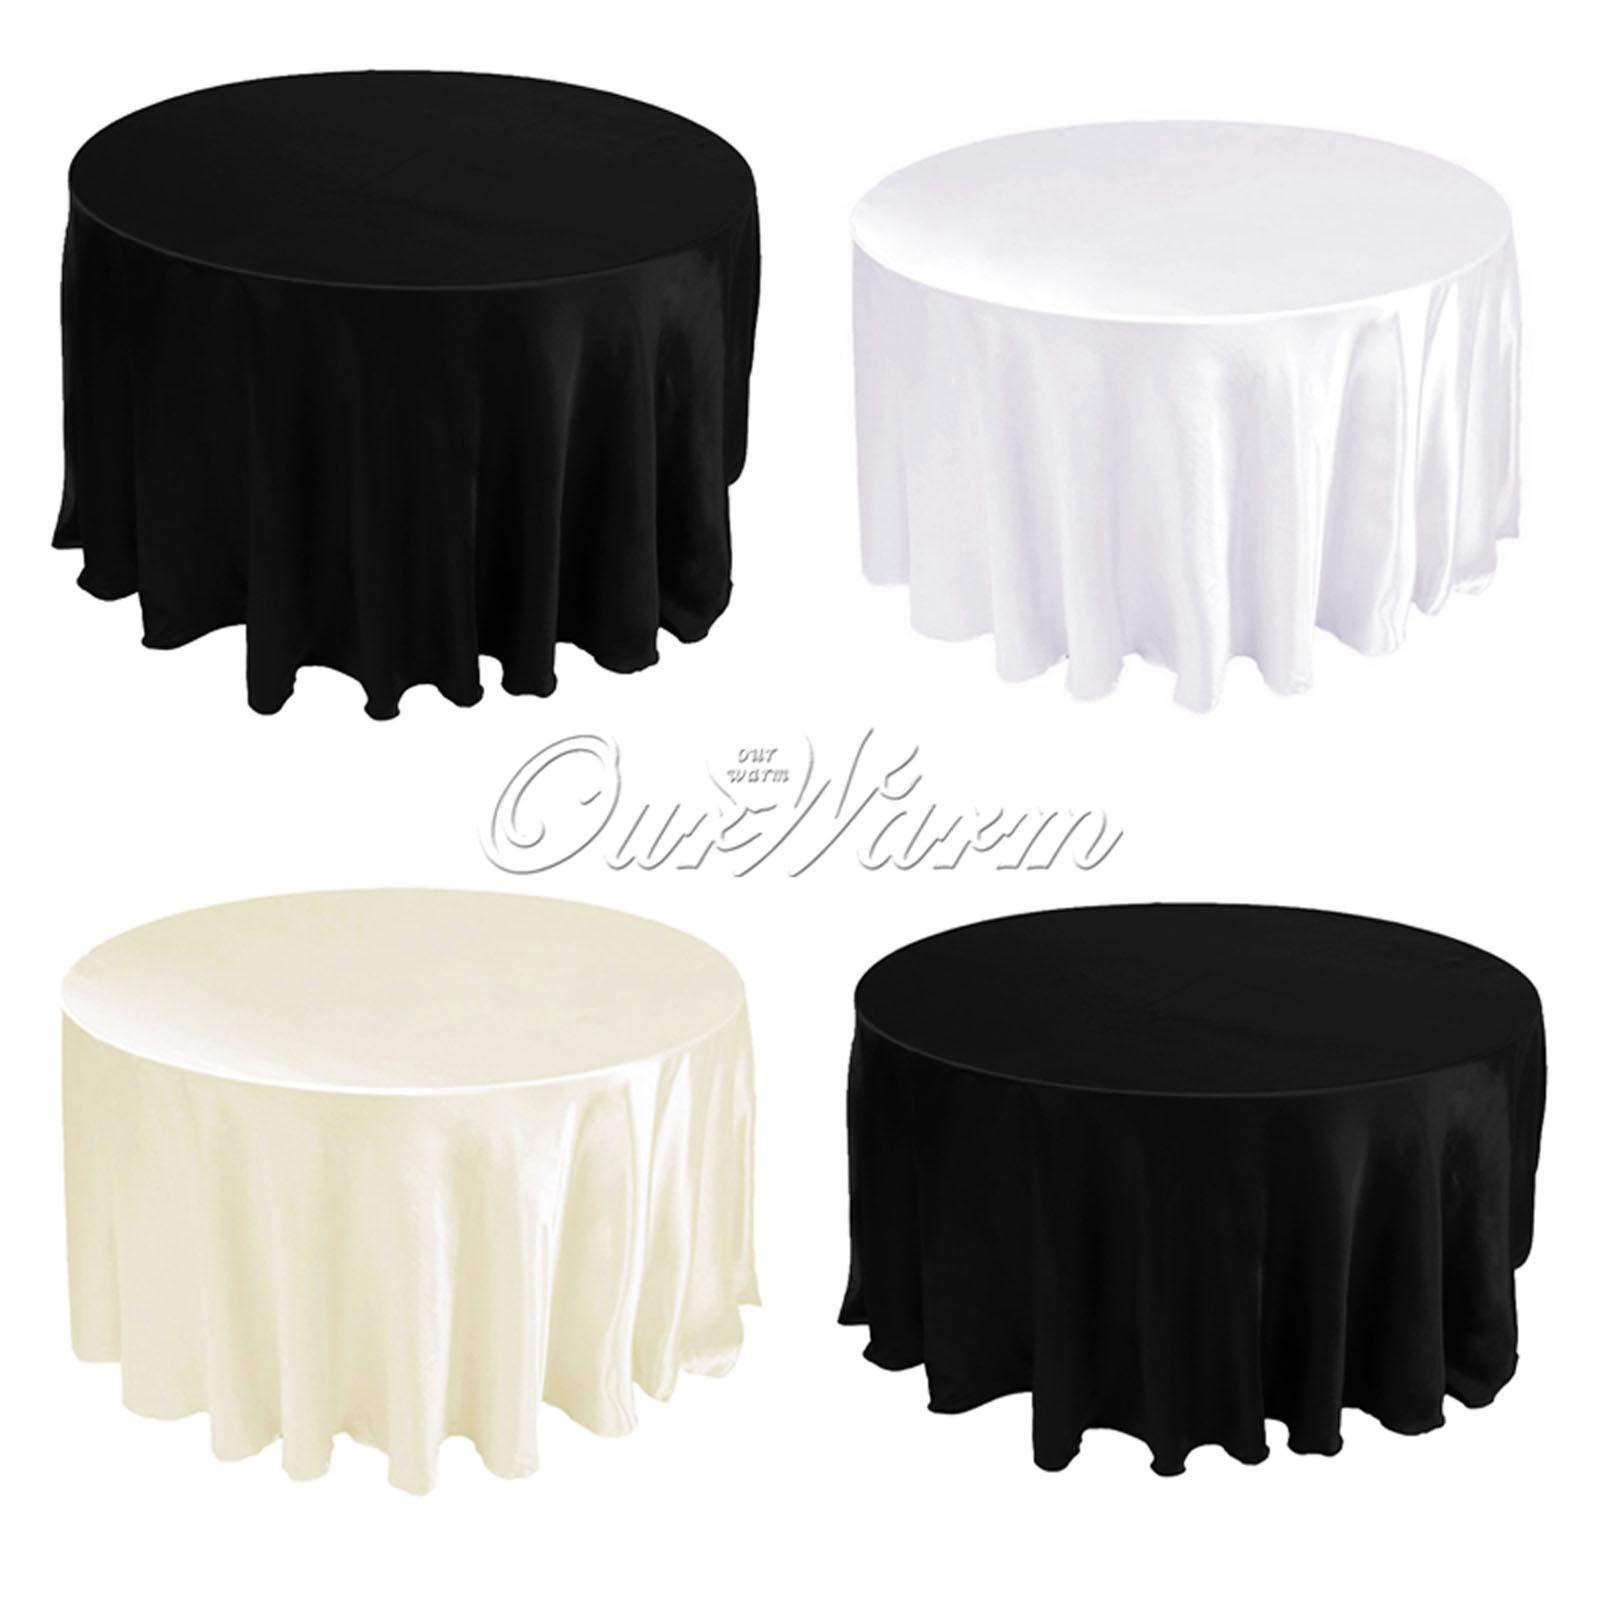 Design Black Tablecloth 108 satin tablecloth table cover white black round for banquet wedding party decor wholesales cth covers sale banquet